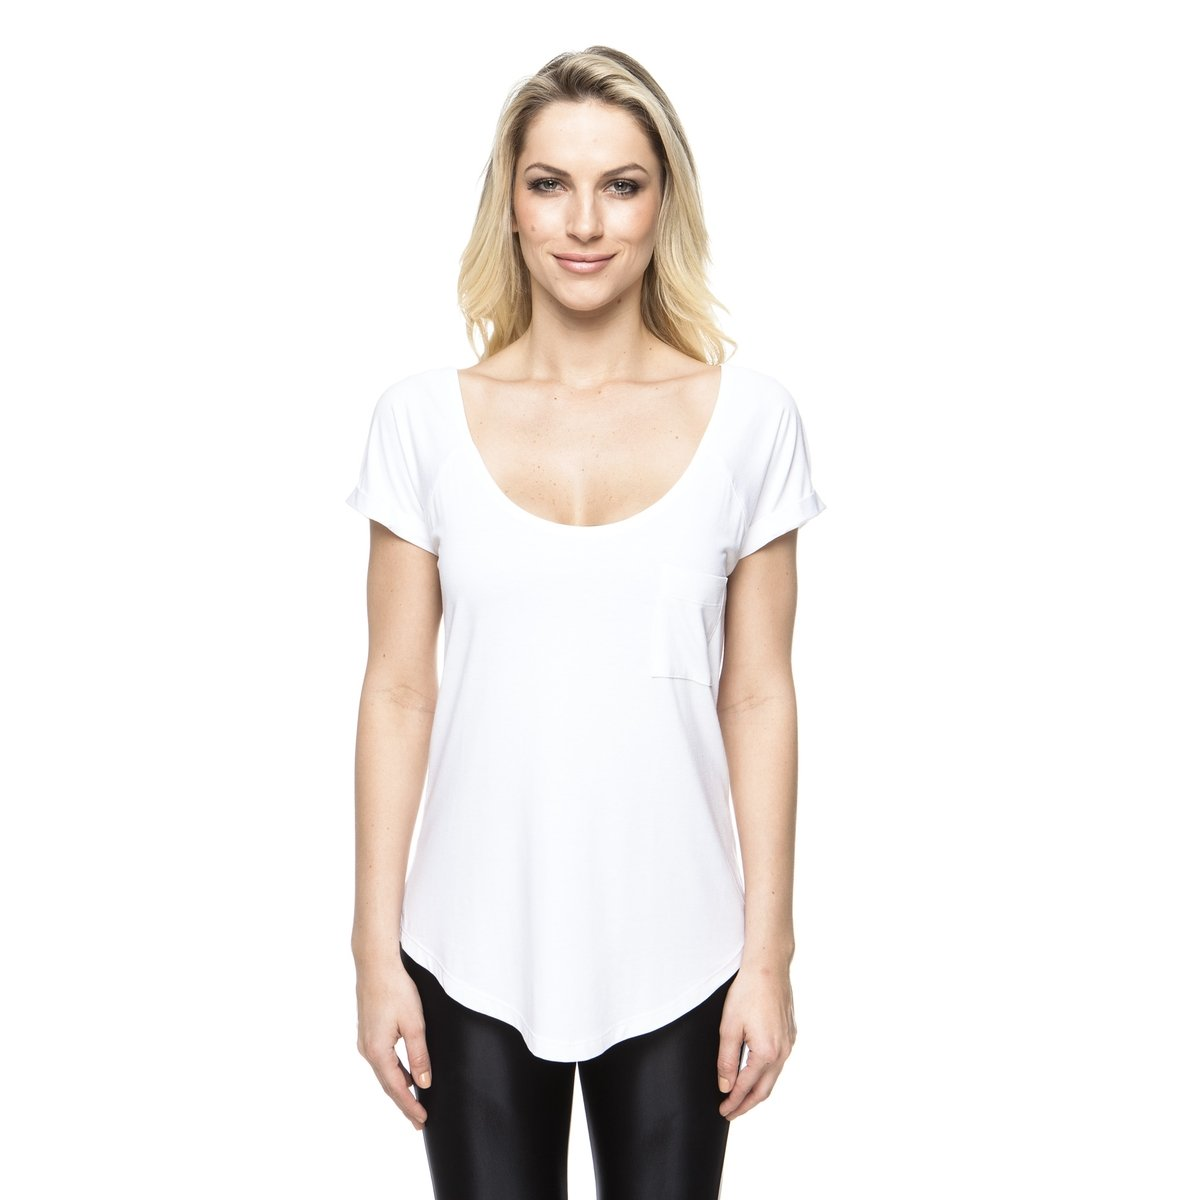 Camiseta New Up Pocket Camiseta Vis Vis Up New Pocket Branco Branco 4qFrpw4